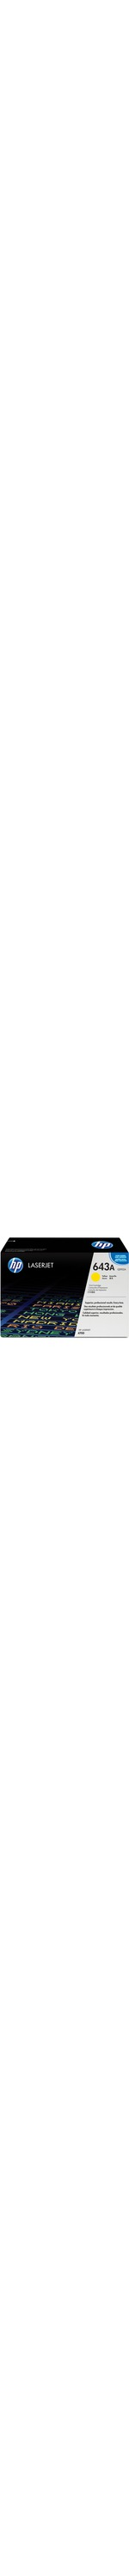 HP 643A Toner Cartridge - Yellow - Laser - 10000 Page - 1 Each